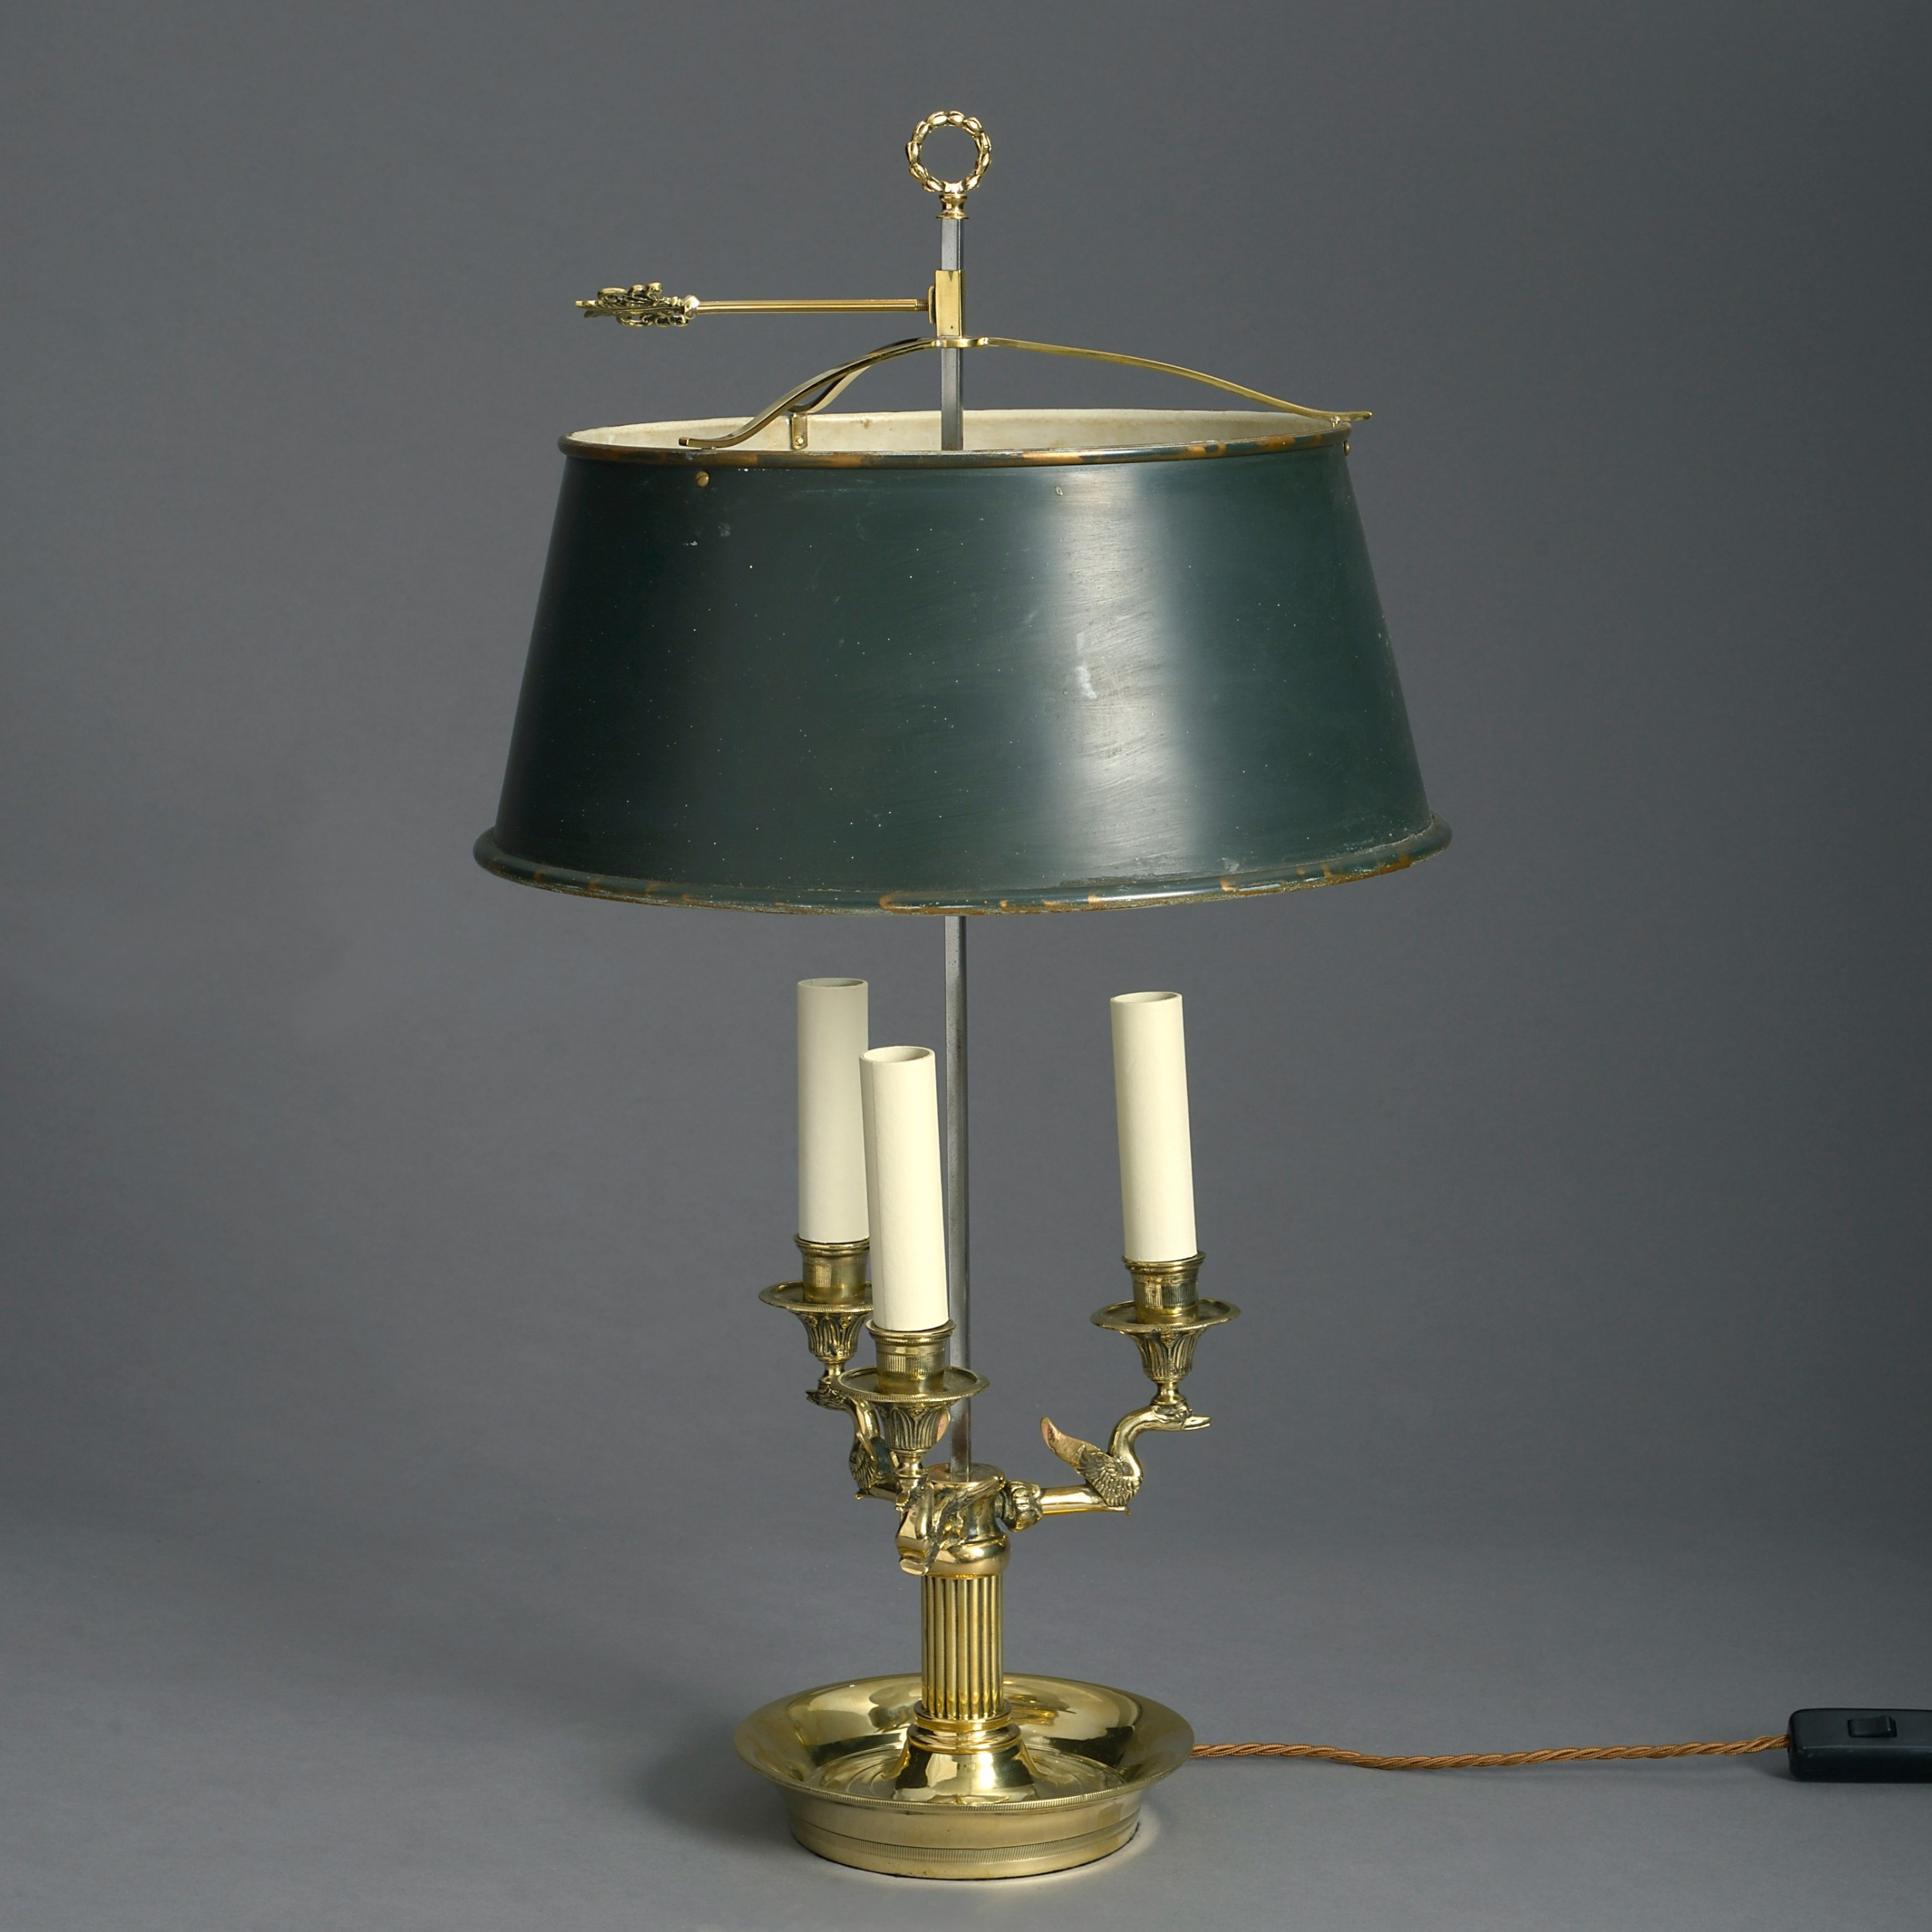 19th century brass and tole bouillotte lamp